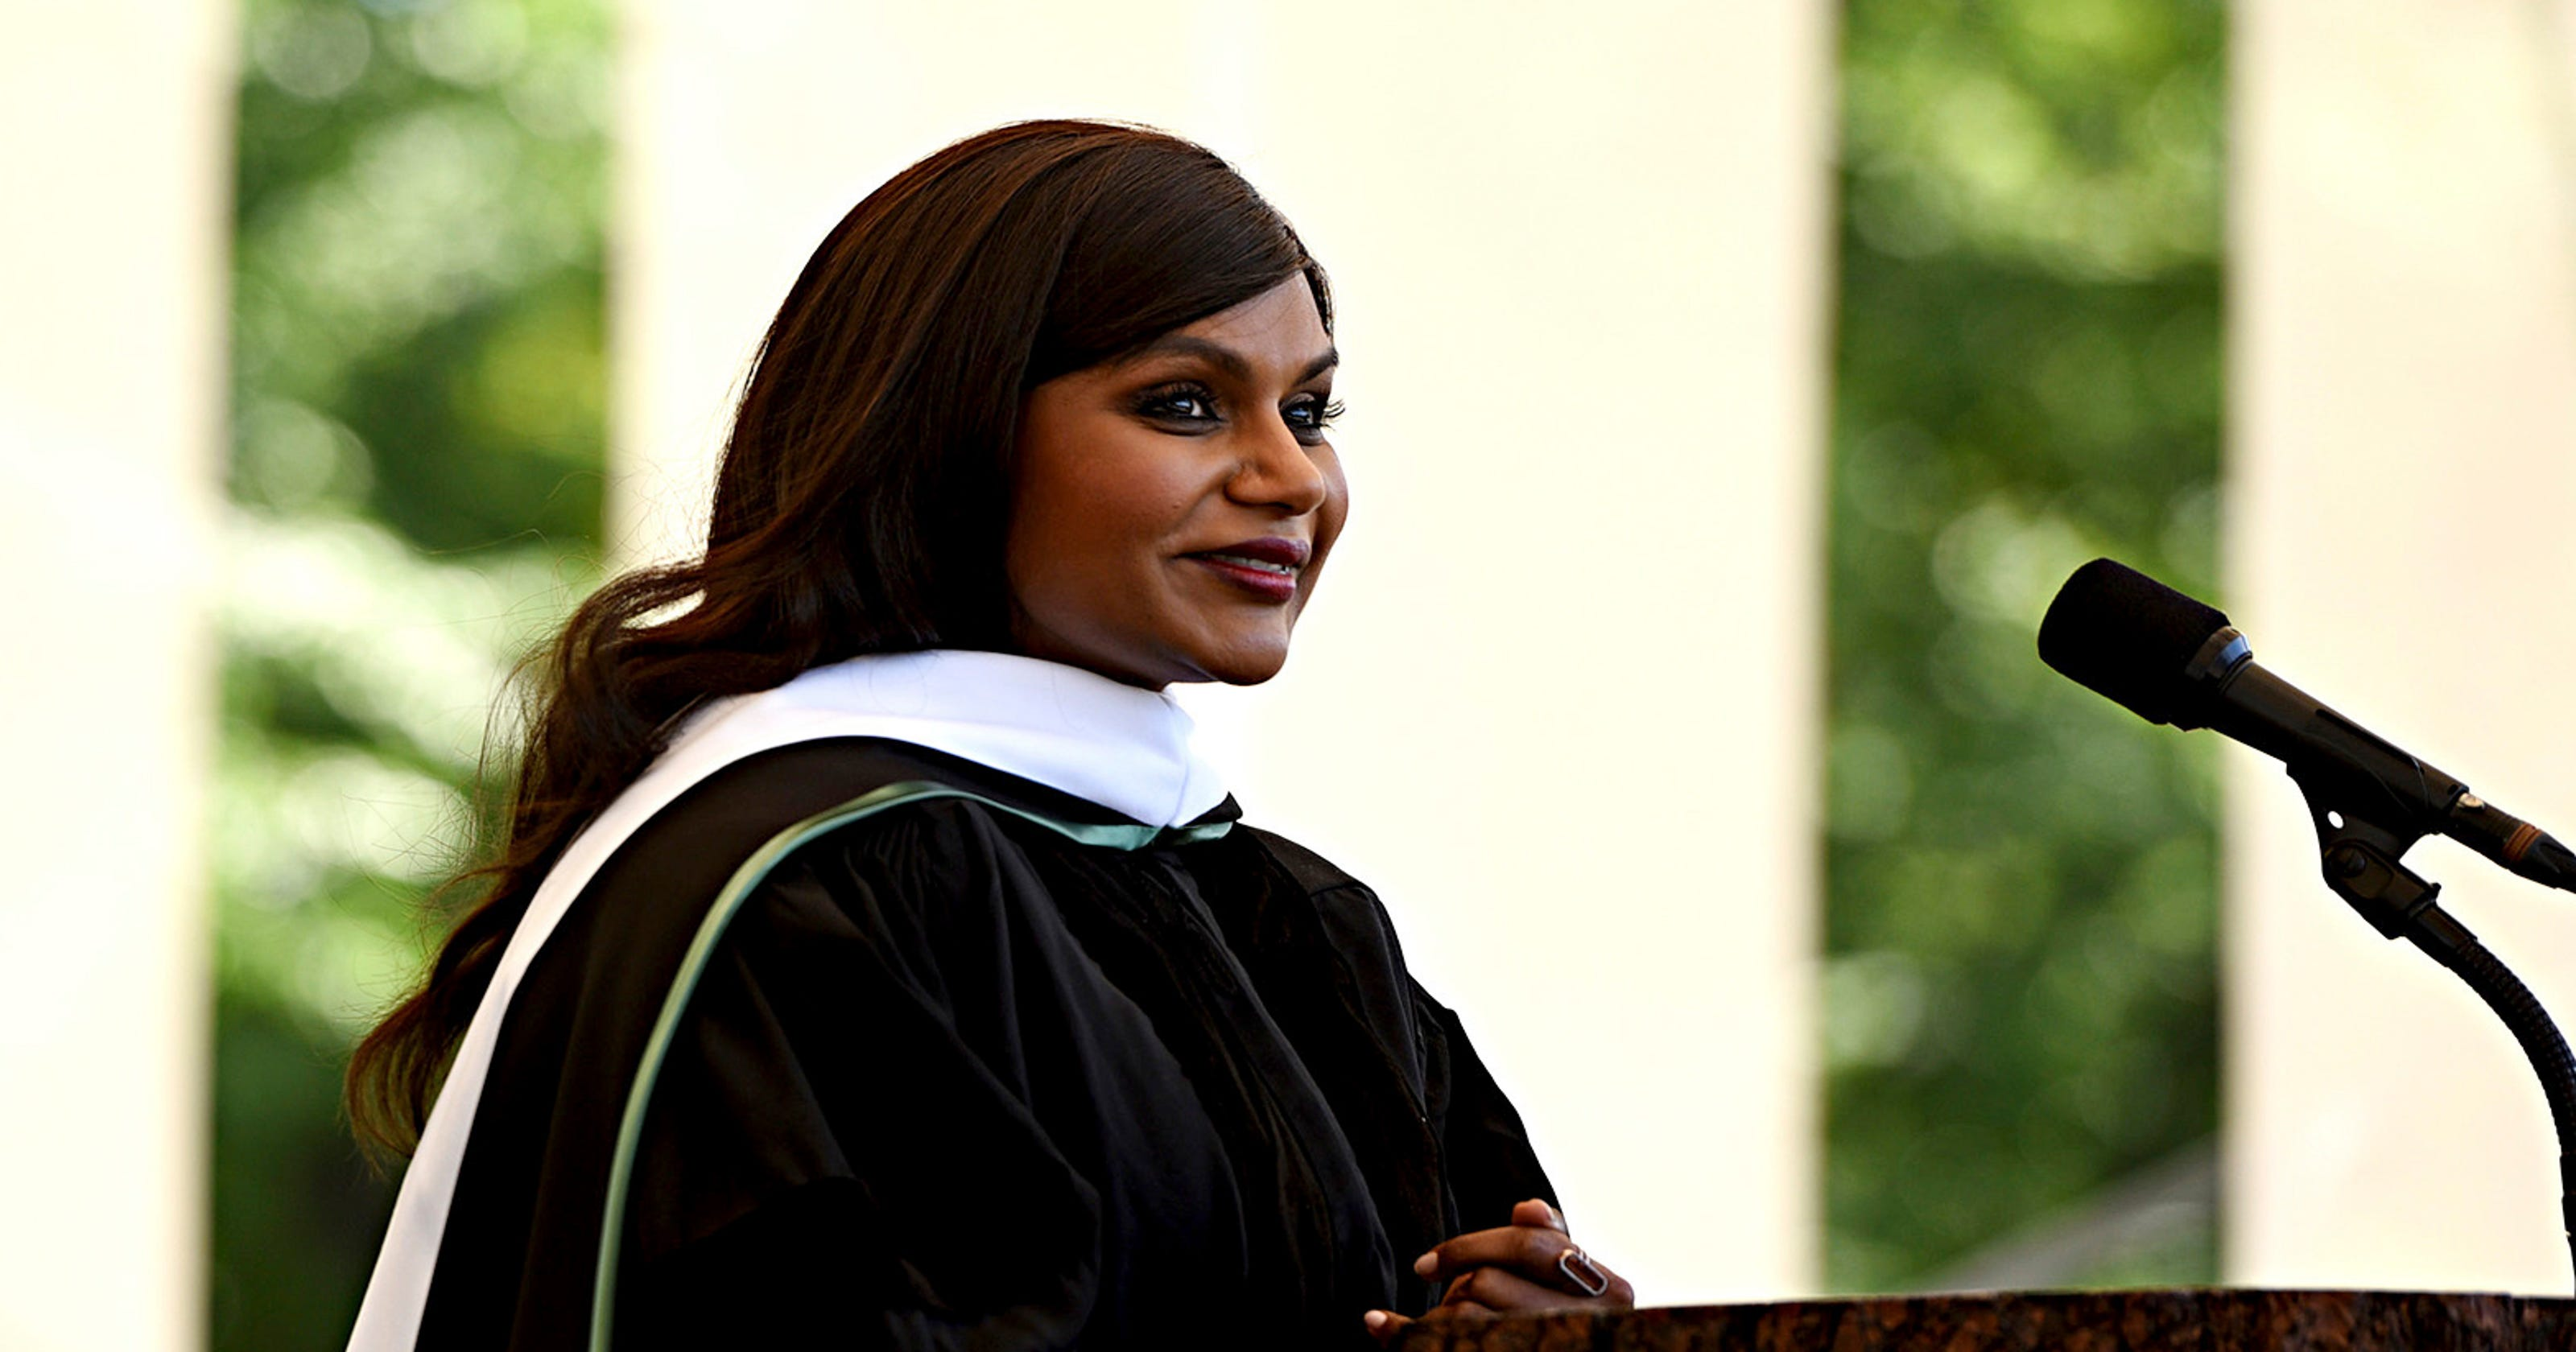 Celebrities rock the cap and gown at graduations